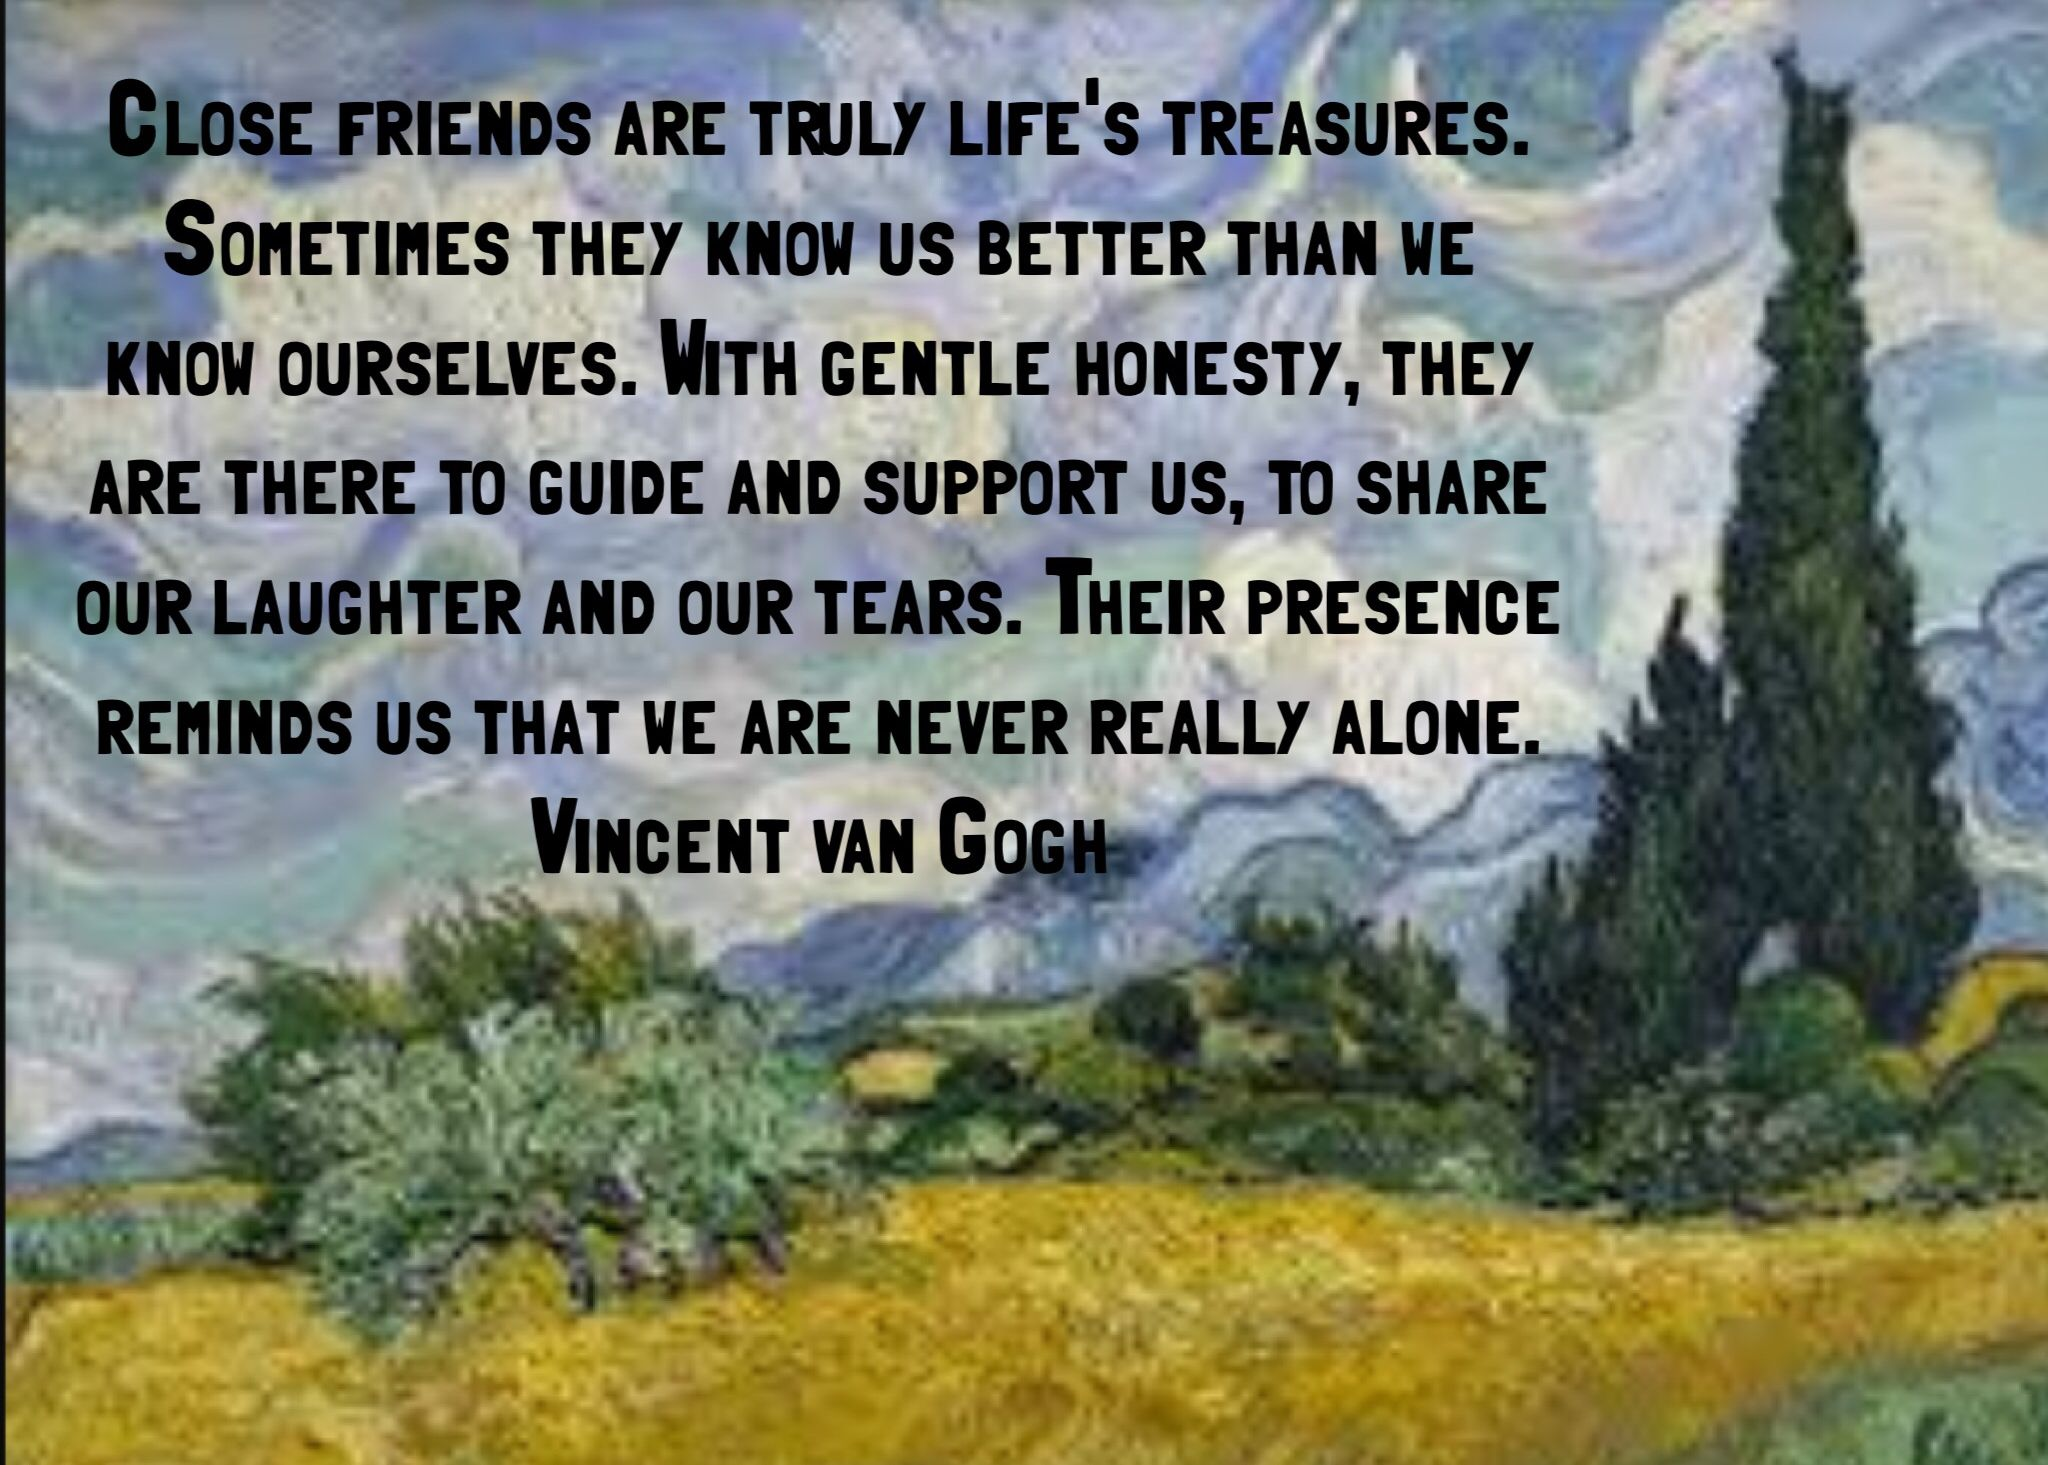 Close friends are truly life's treasures. Sometimes they know us better than we know ourselves. With gentle honesty, they are there to guide and support us, to share our laughter and our tears. Their presence reminds us that we are never really alone -Vincent van Gogh